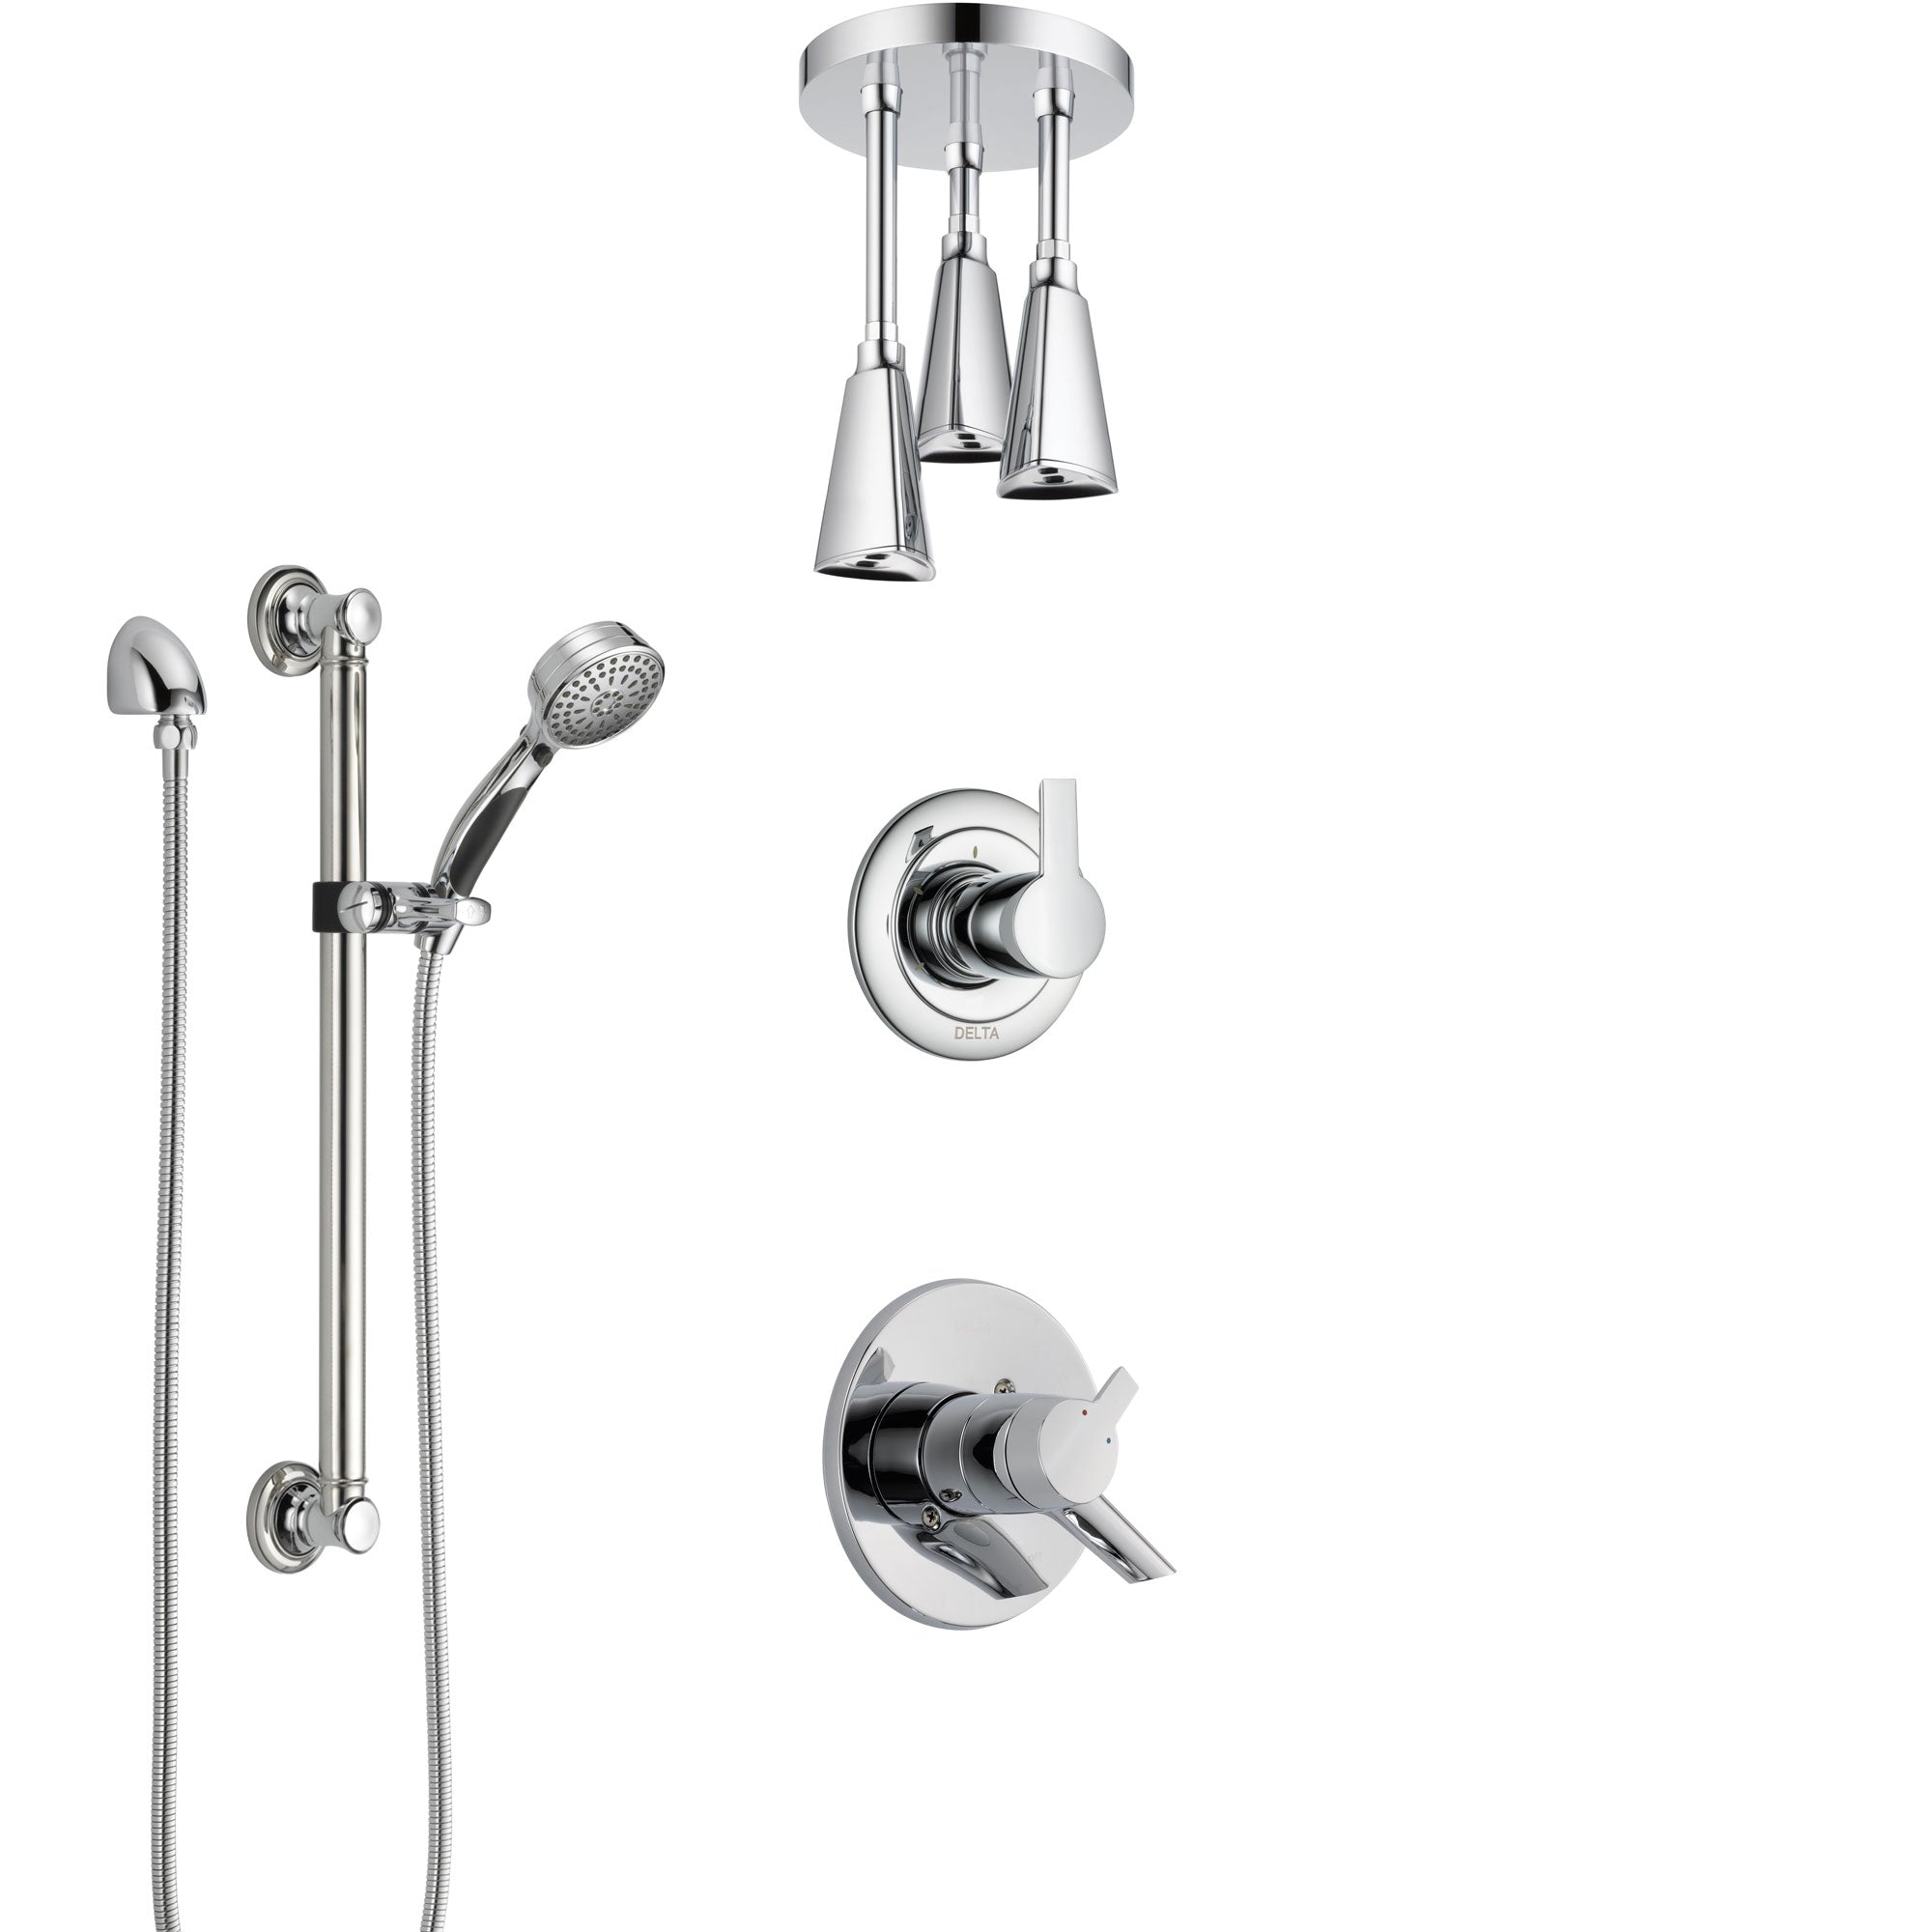 Delta Compel Chrome Finish Shower System with Dual Control Handle, 3-Setting Diverter, Ceiling Mount Showerhead, and Hand Shower with Grab Bar SS17616